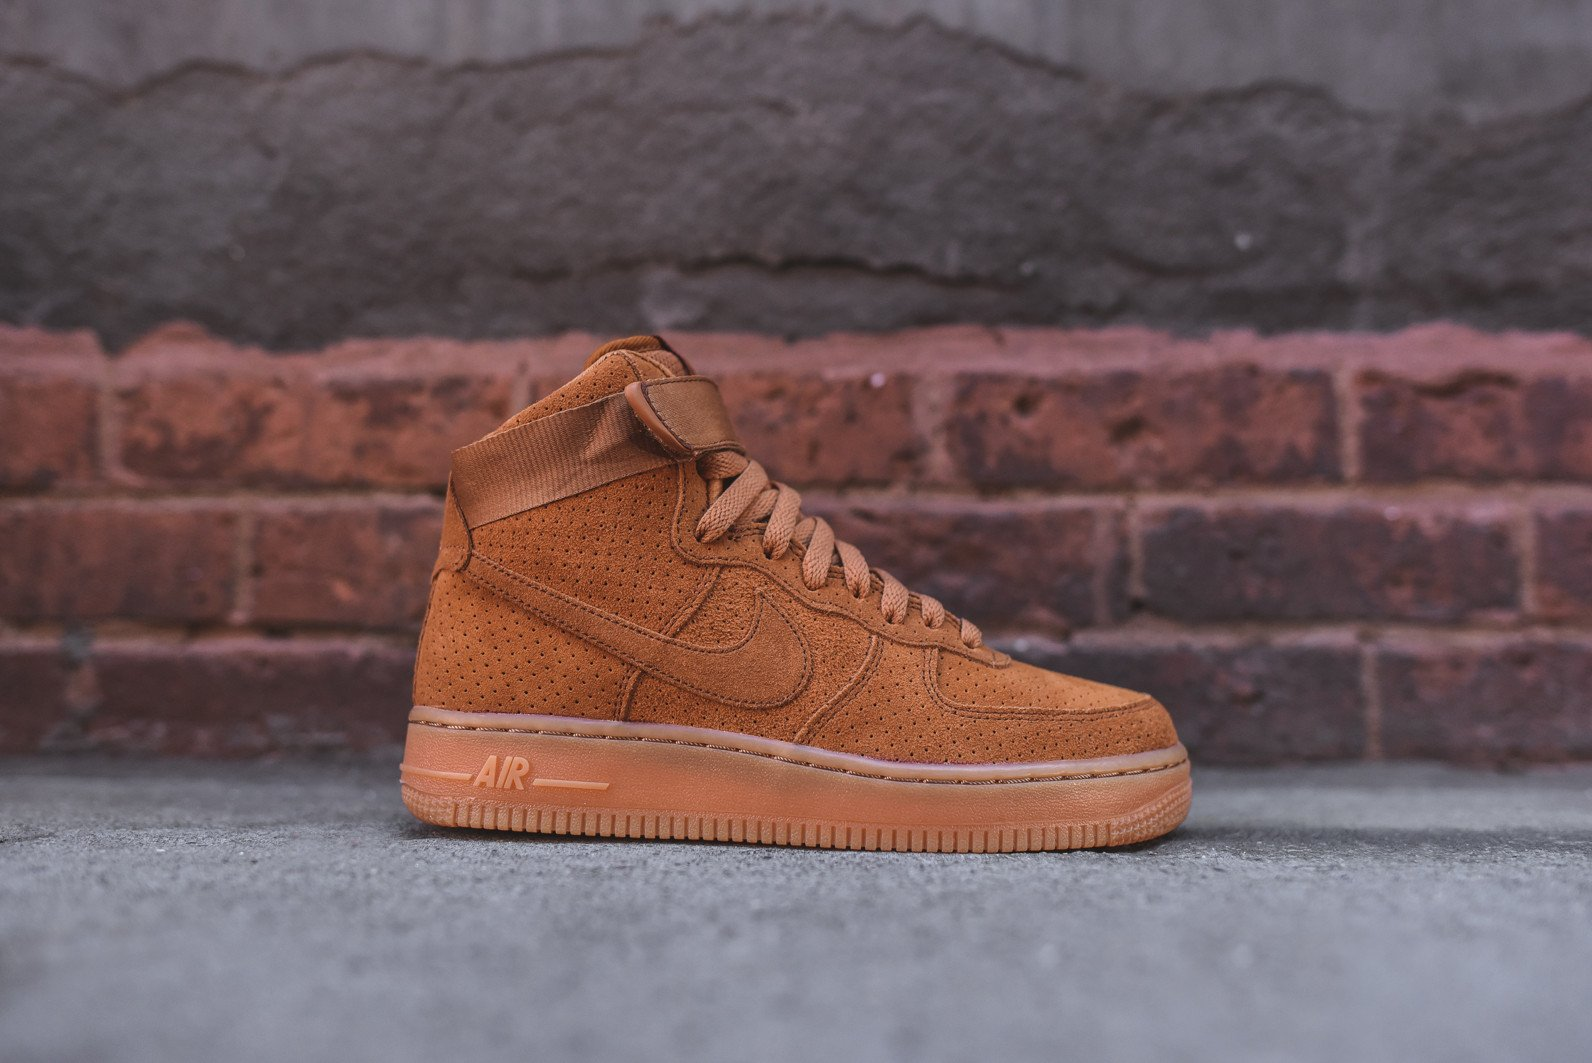 low priced 9175a 91b73 Nike Air Force 1 Perforated Suede Pack | SneakerFiles